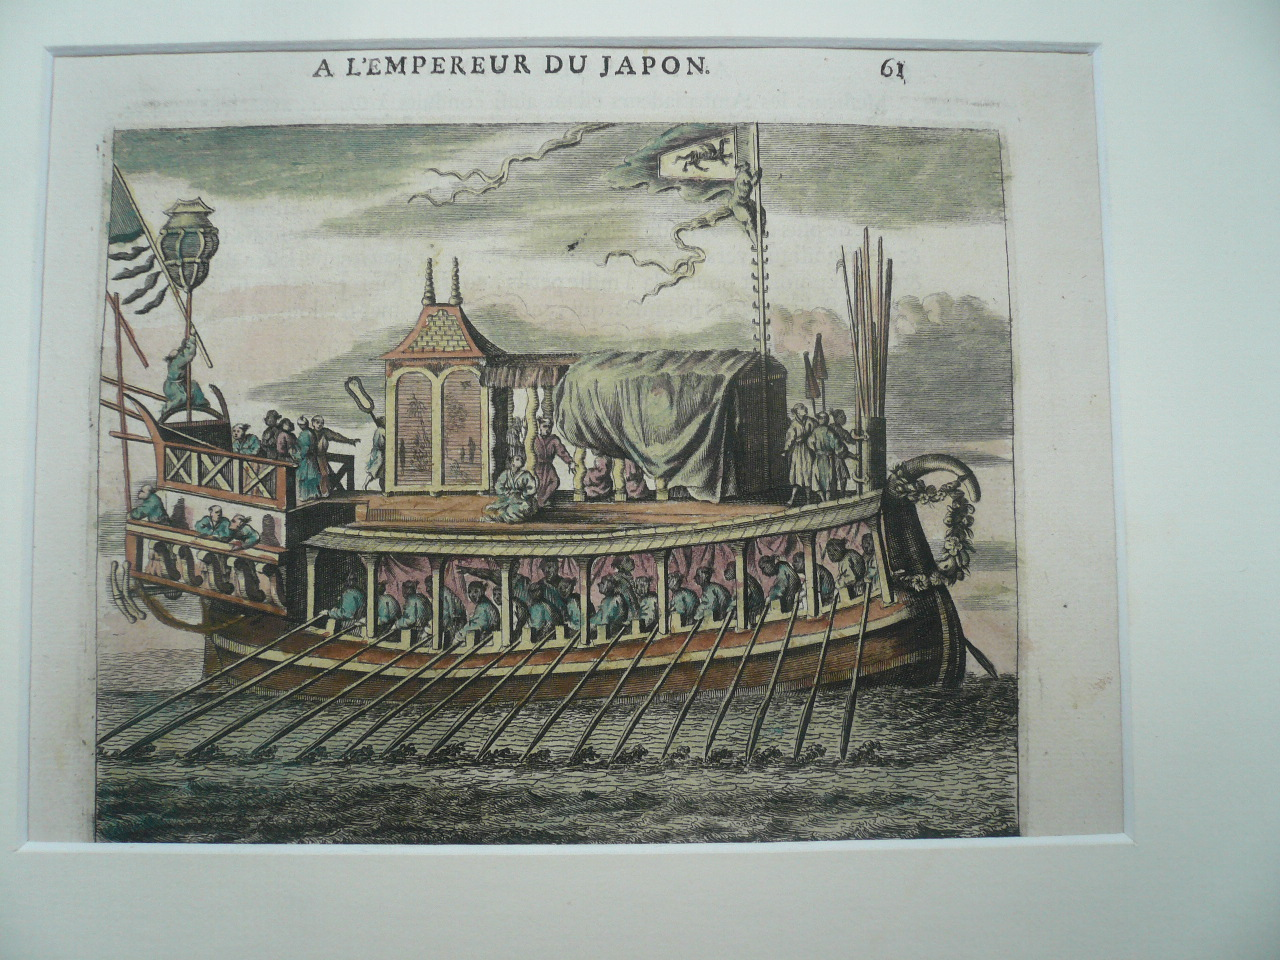 Ambassade Memorable, anno 1680, Montanus-JAPON- Japon, anno 1680